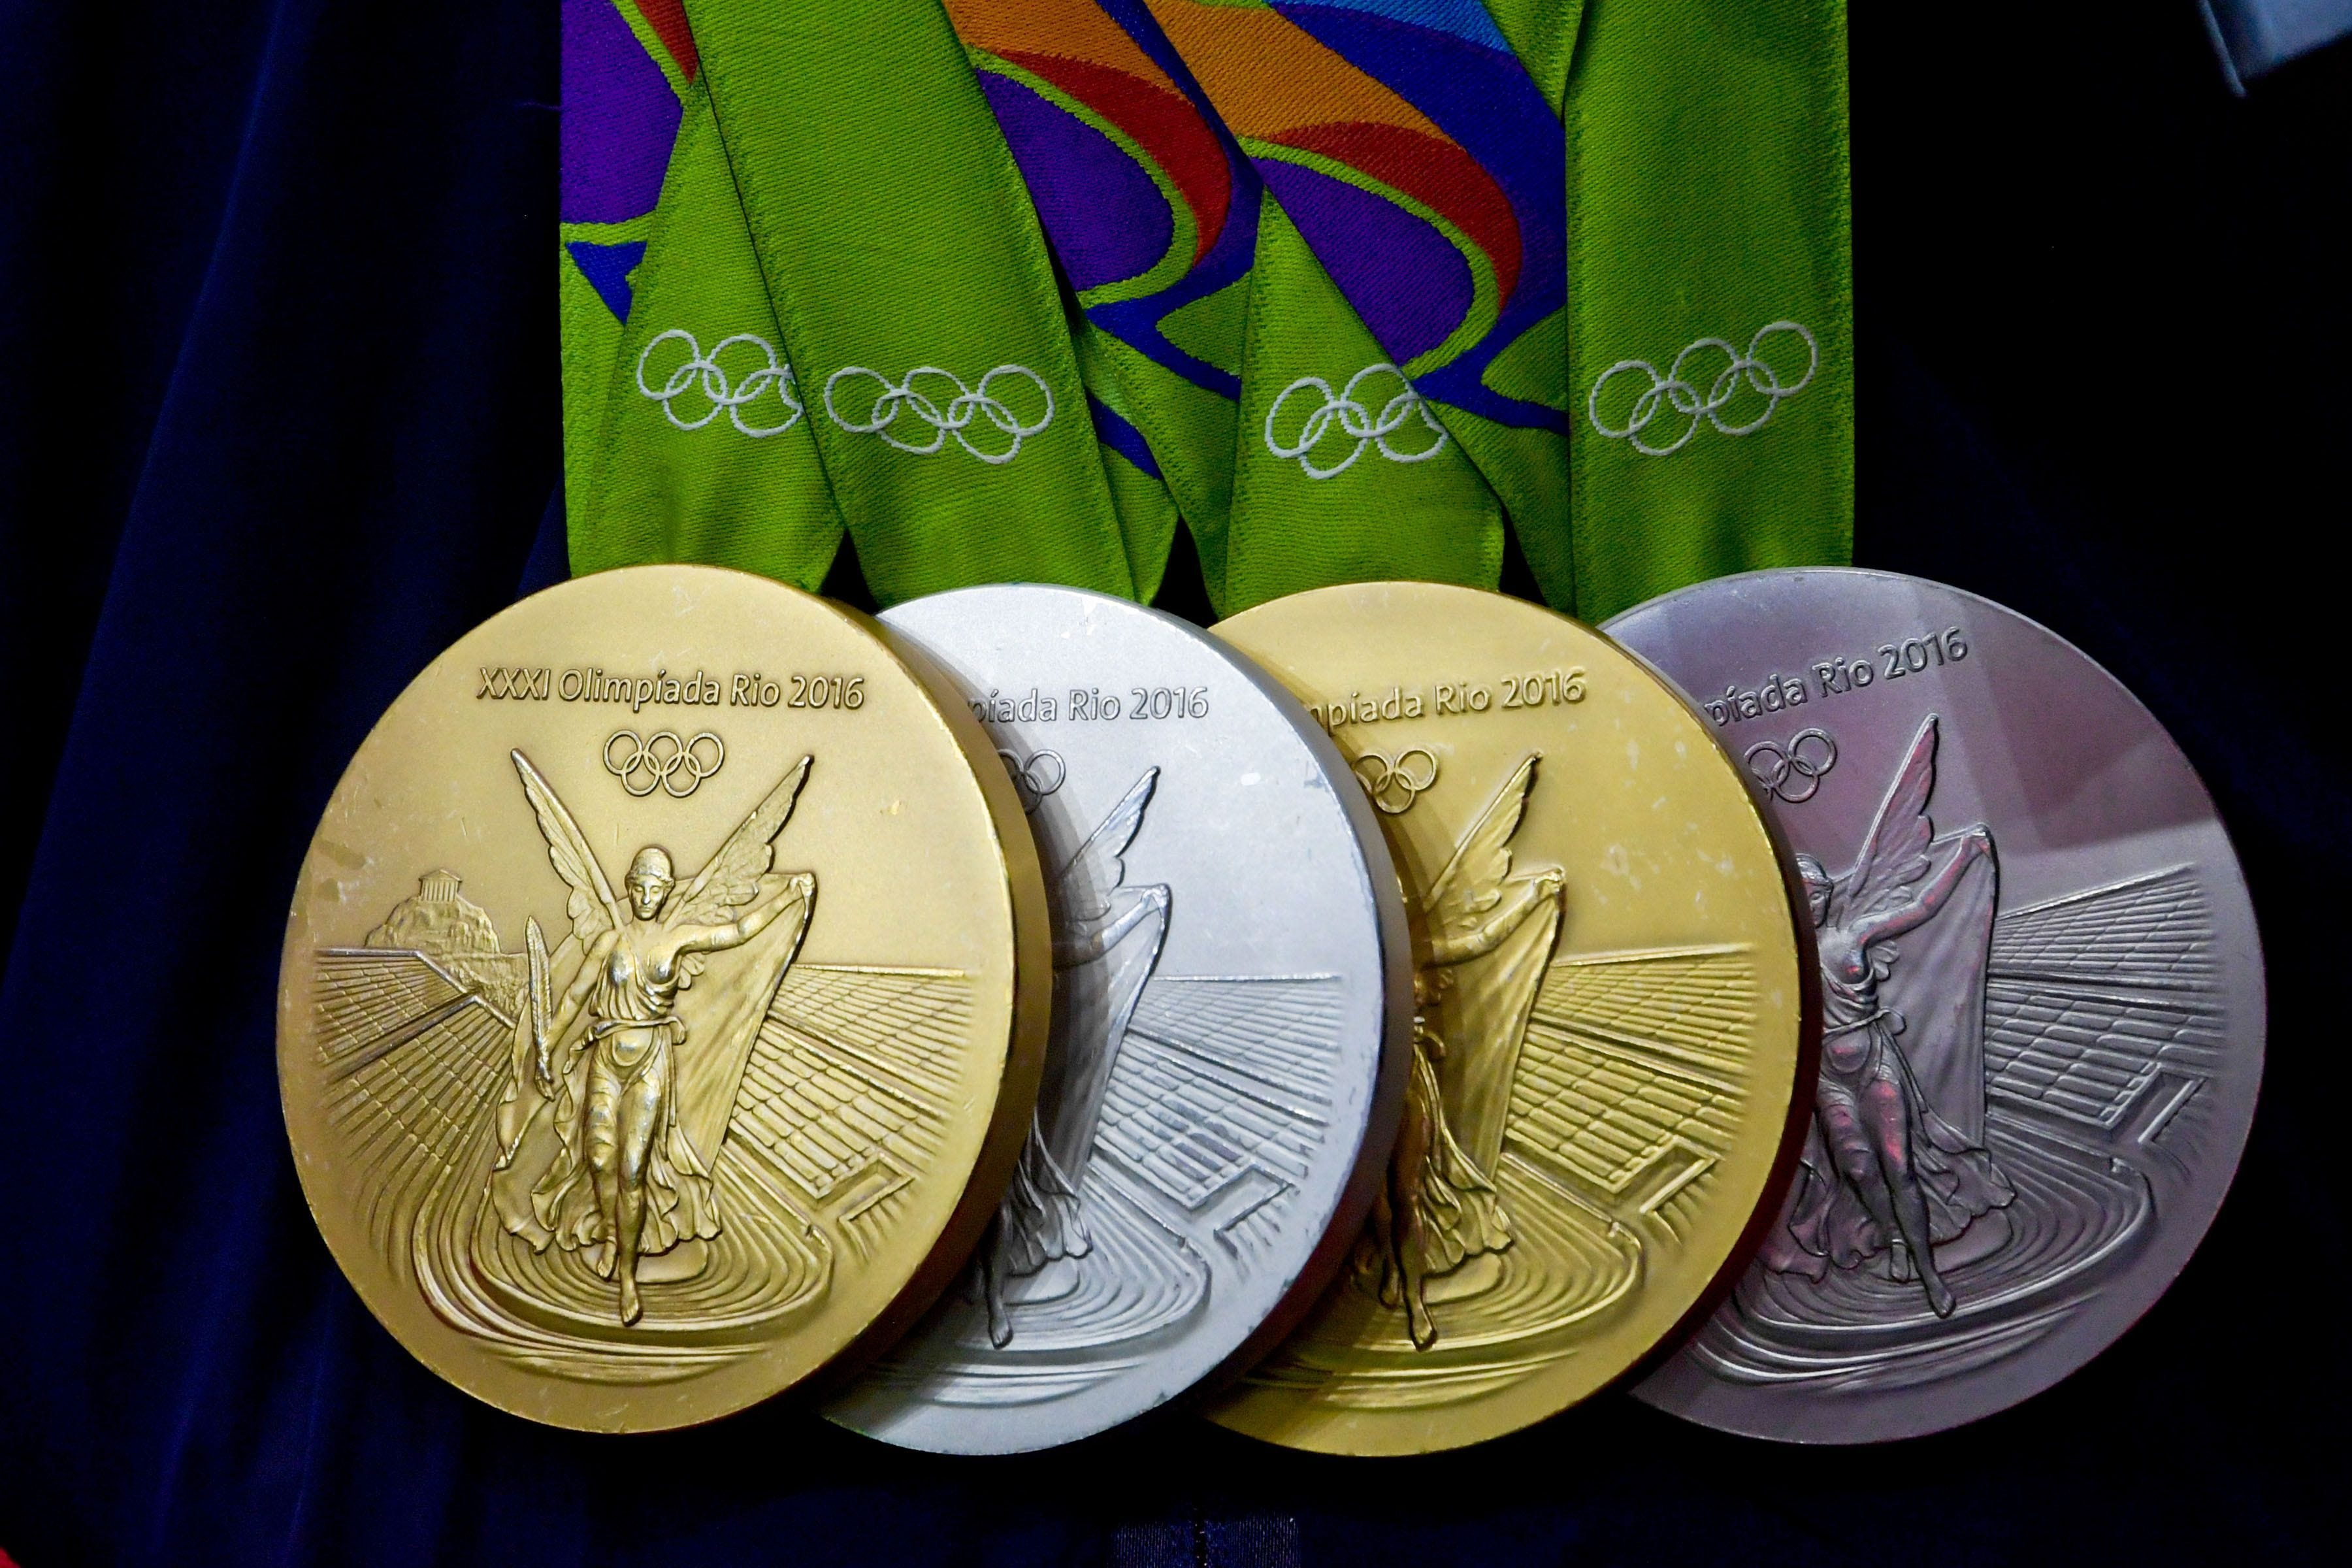 Medals from 2016 Rio Olympic Games are defective and show rusting, chipping